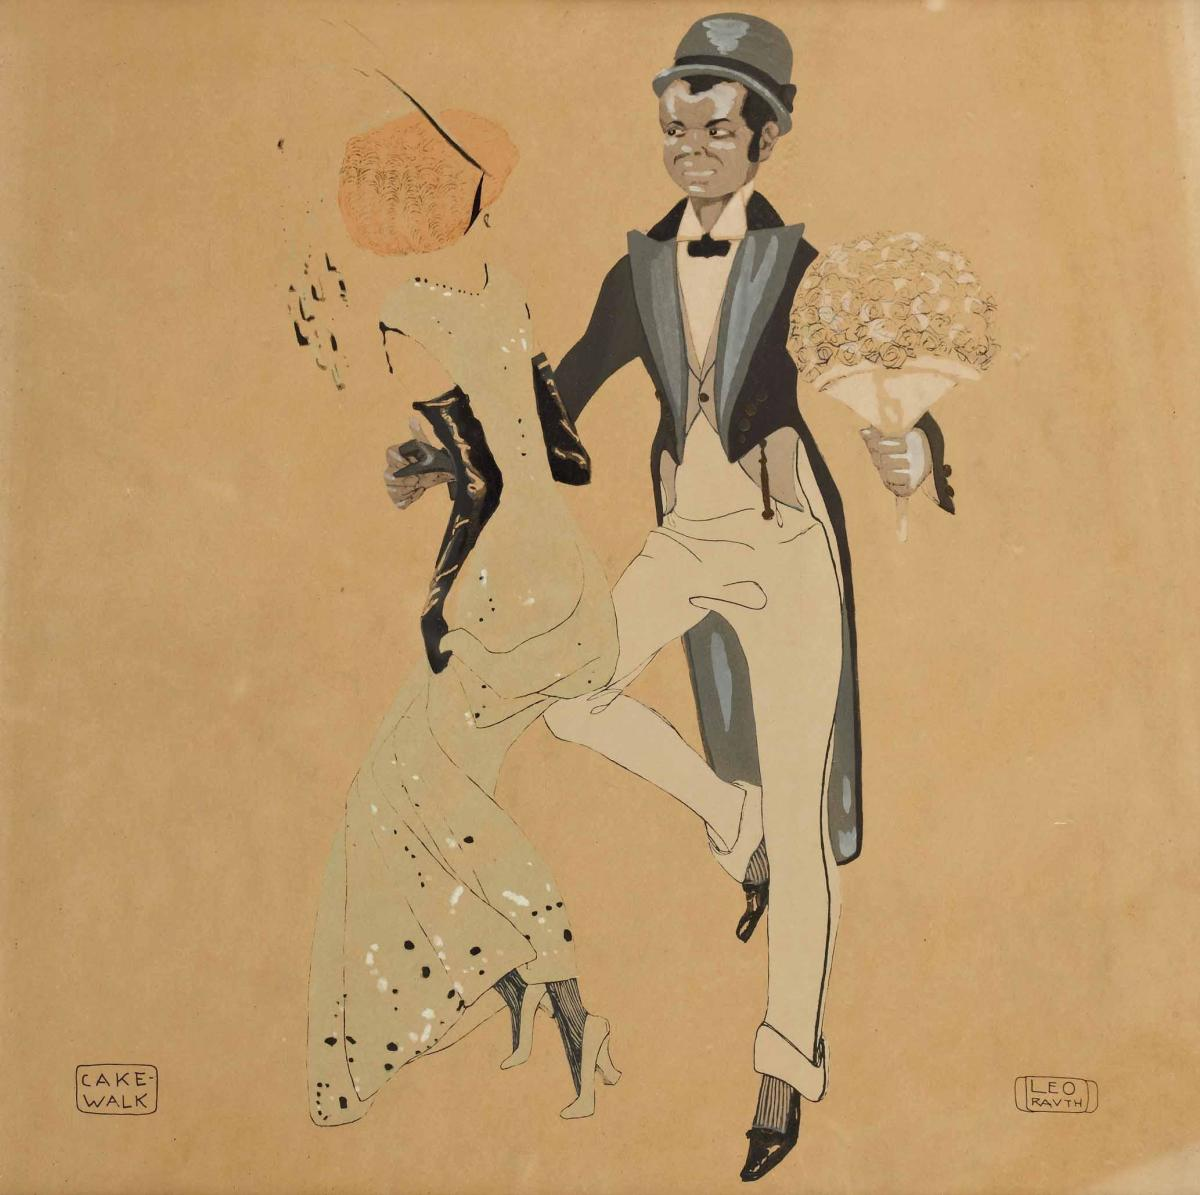 """Cake-Walk"" by Leo Rauth, 1913 - public domain"